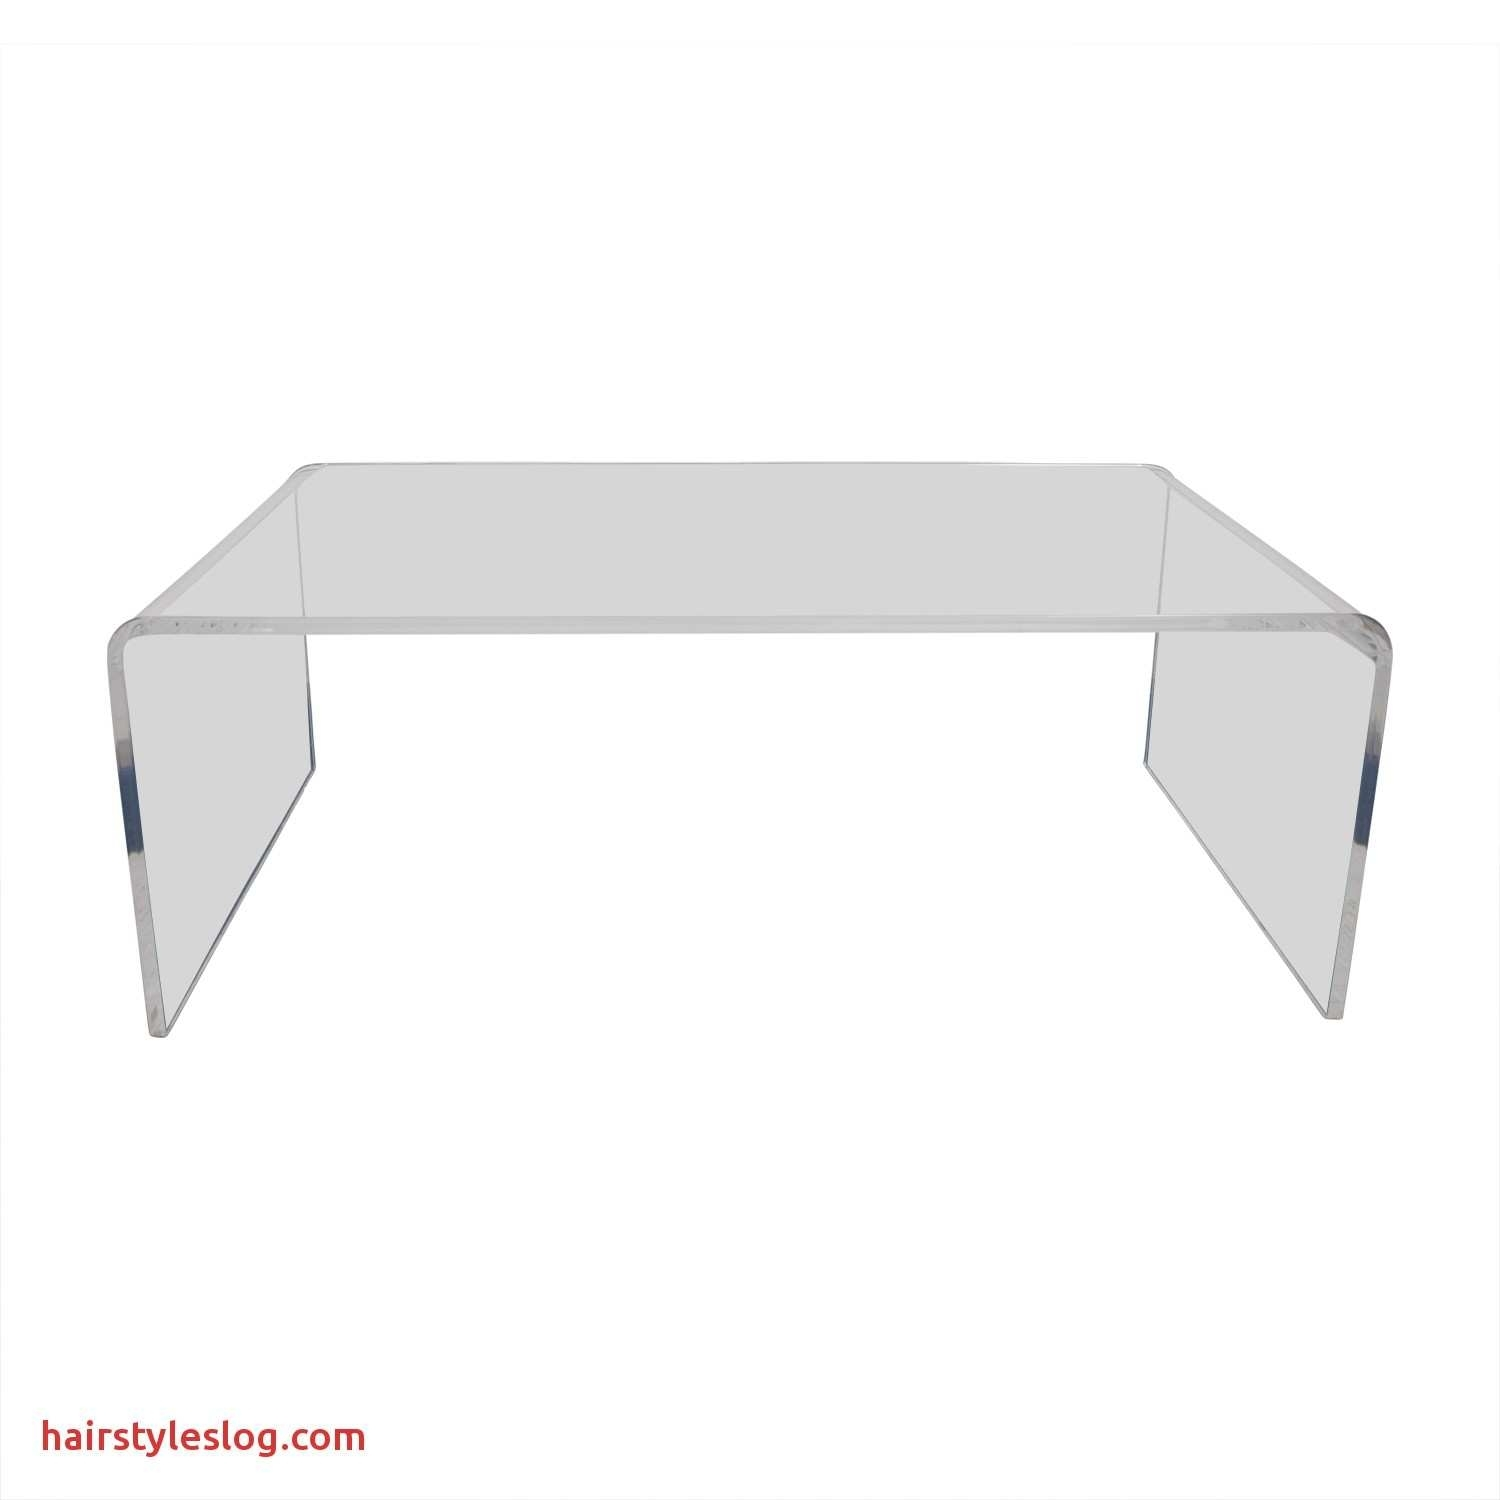 Wave To Flush: Cb2 Free Shipping For Home Prepare 60 Off Cb2 Cb2 for Peekaboo Acrylic Tall Coffee Tables (Image 30 of 30)